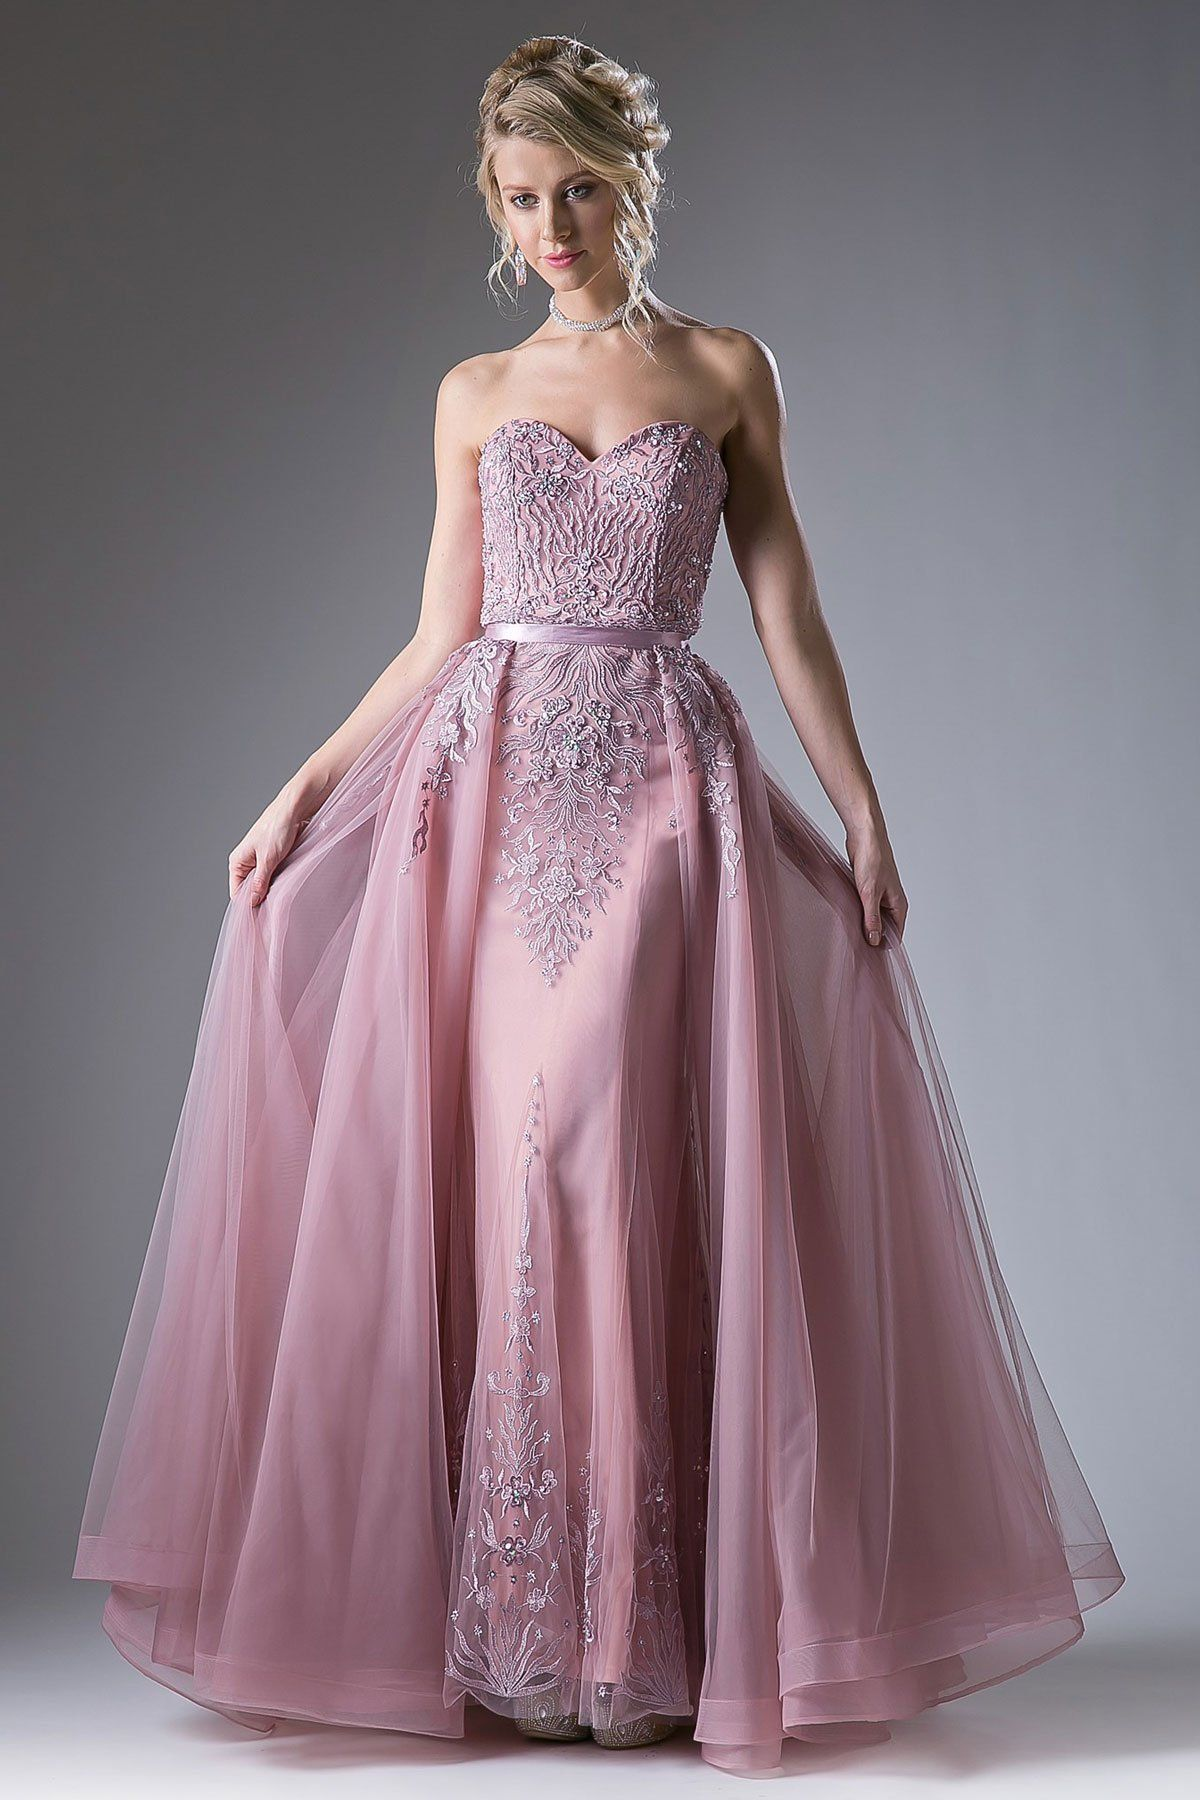 Strapless sweetheart sheer overlay gown with train colors dusty rose